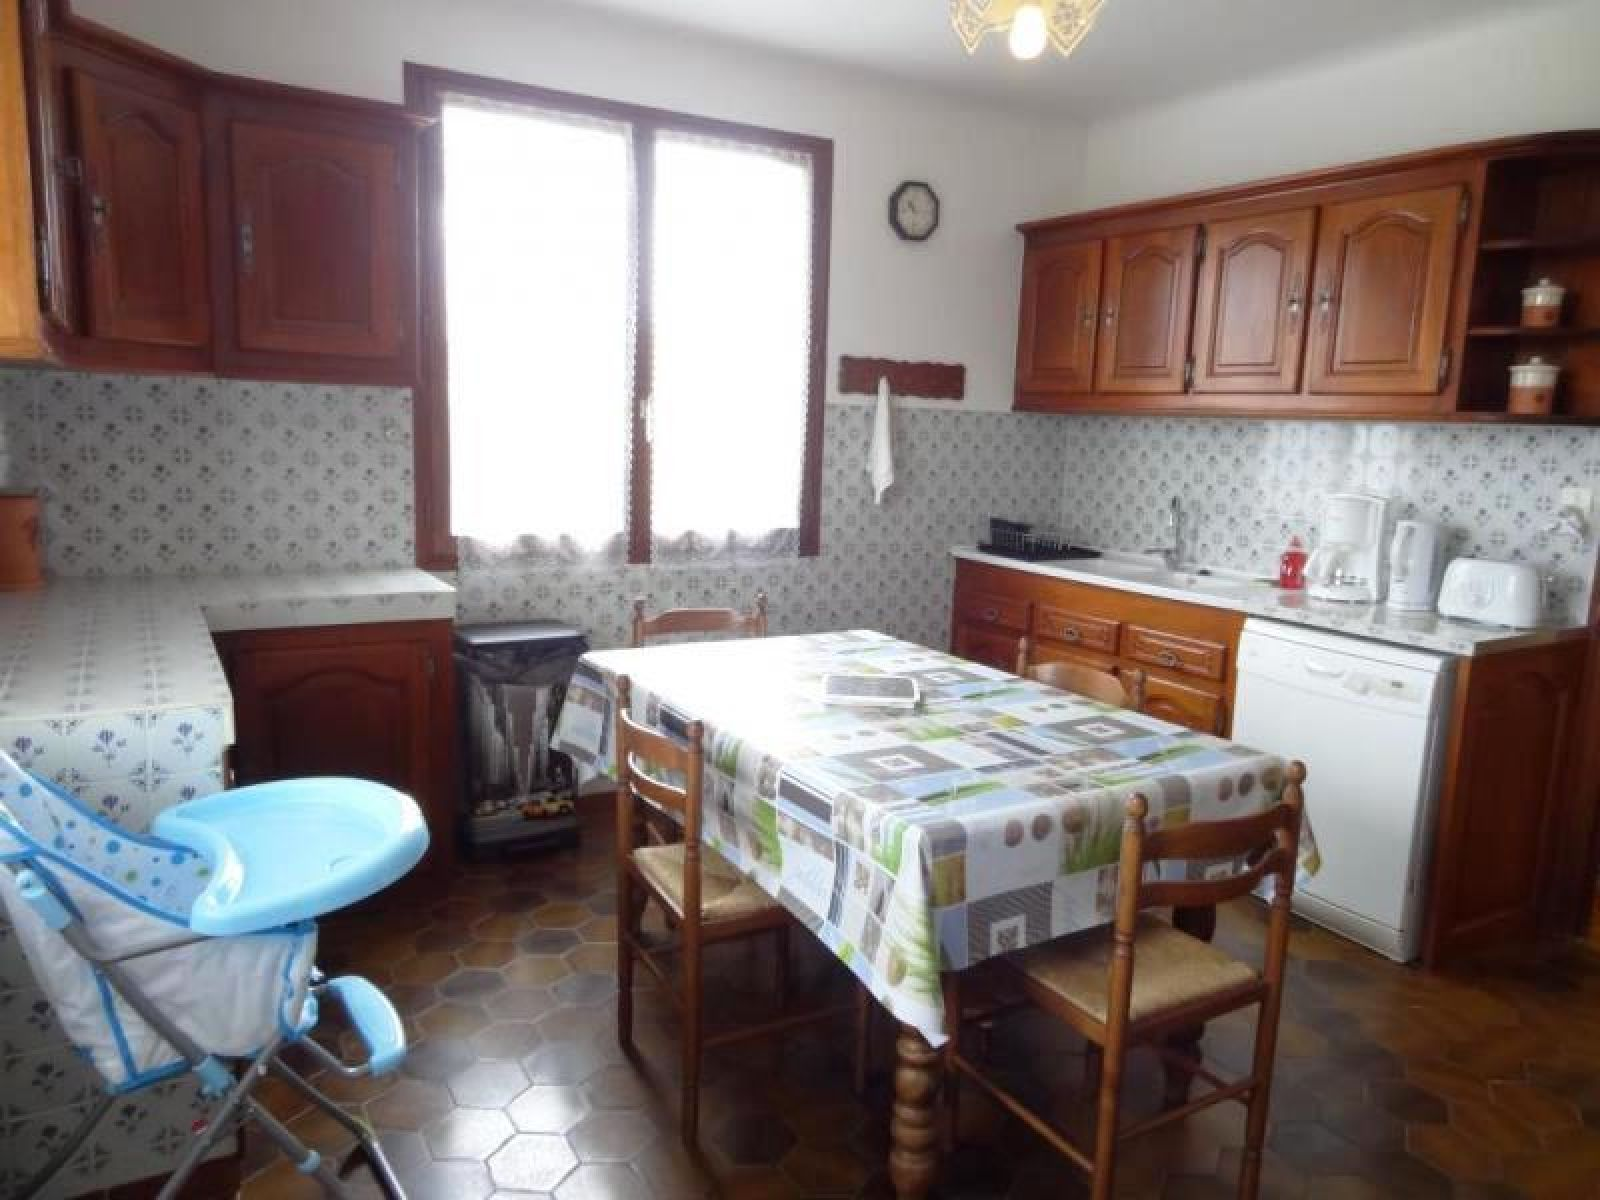 Appartement Elicagaray cuisine - Bussunarits